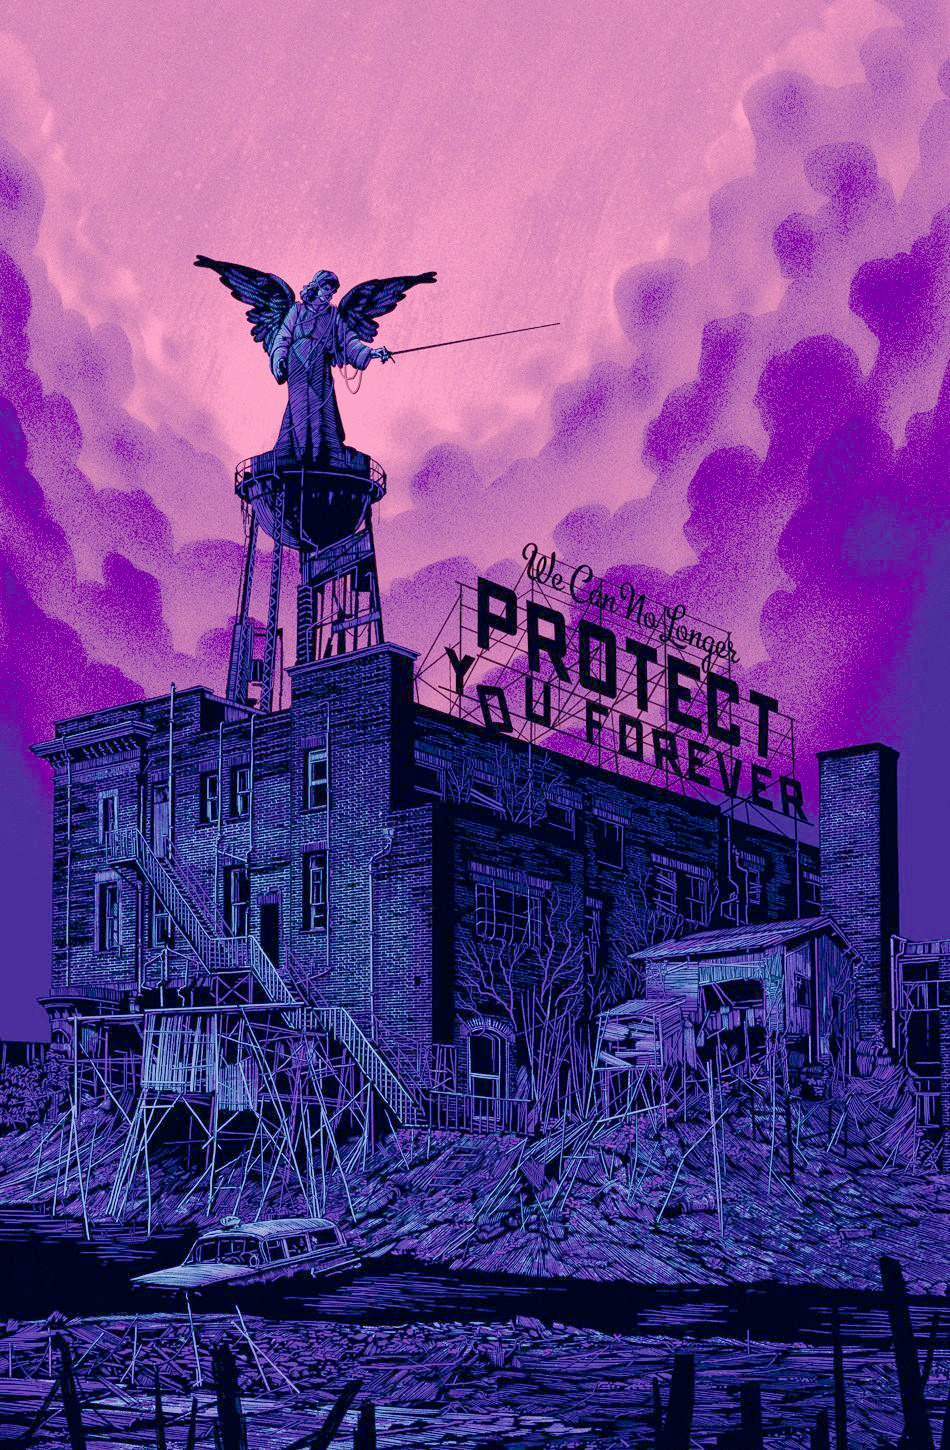 Daniel Danger, We can no longer protect you forever, 2014, sérigraphie.